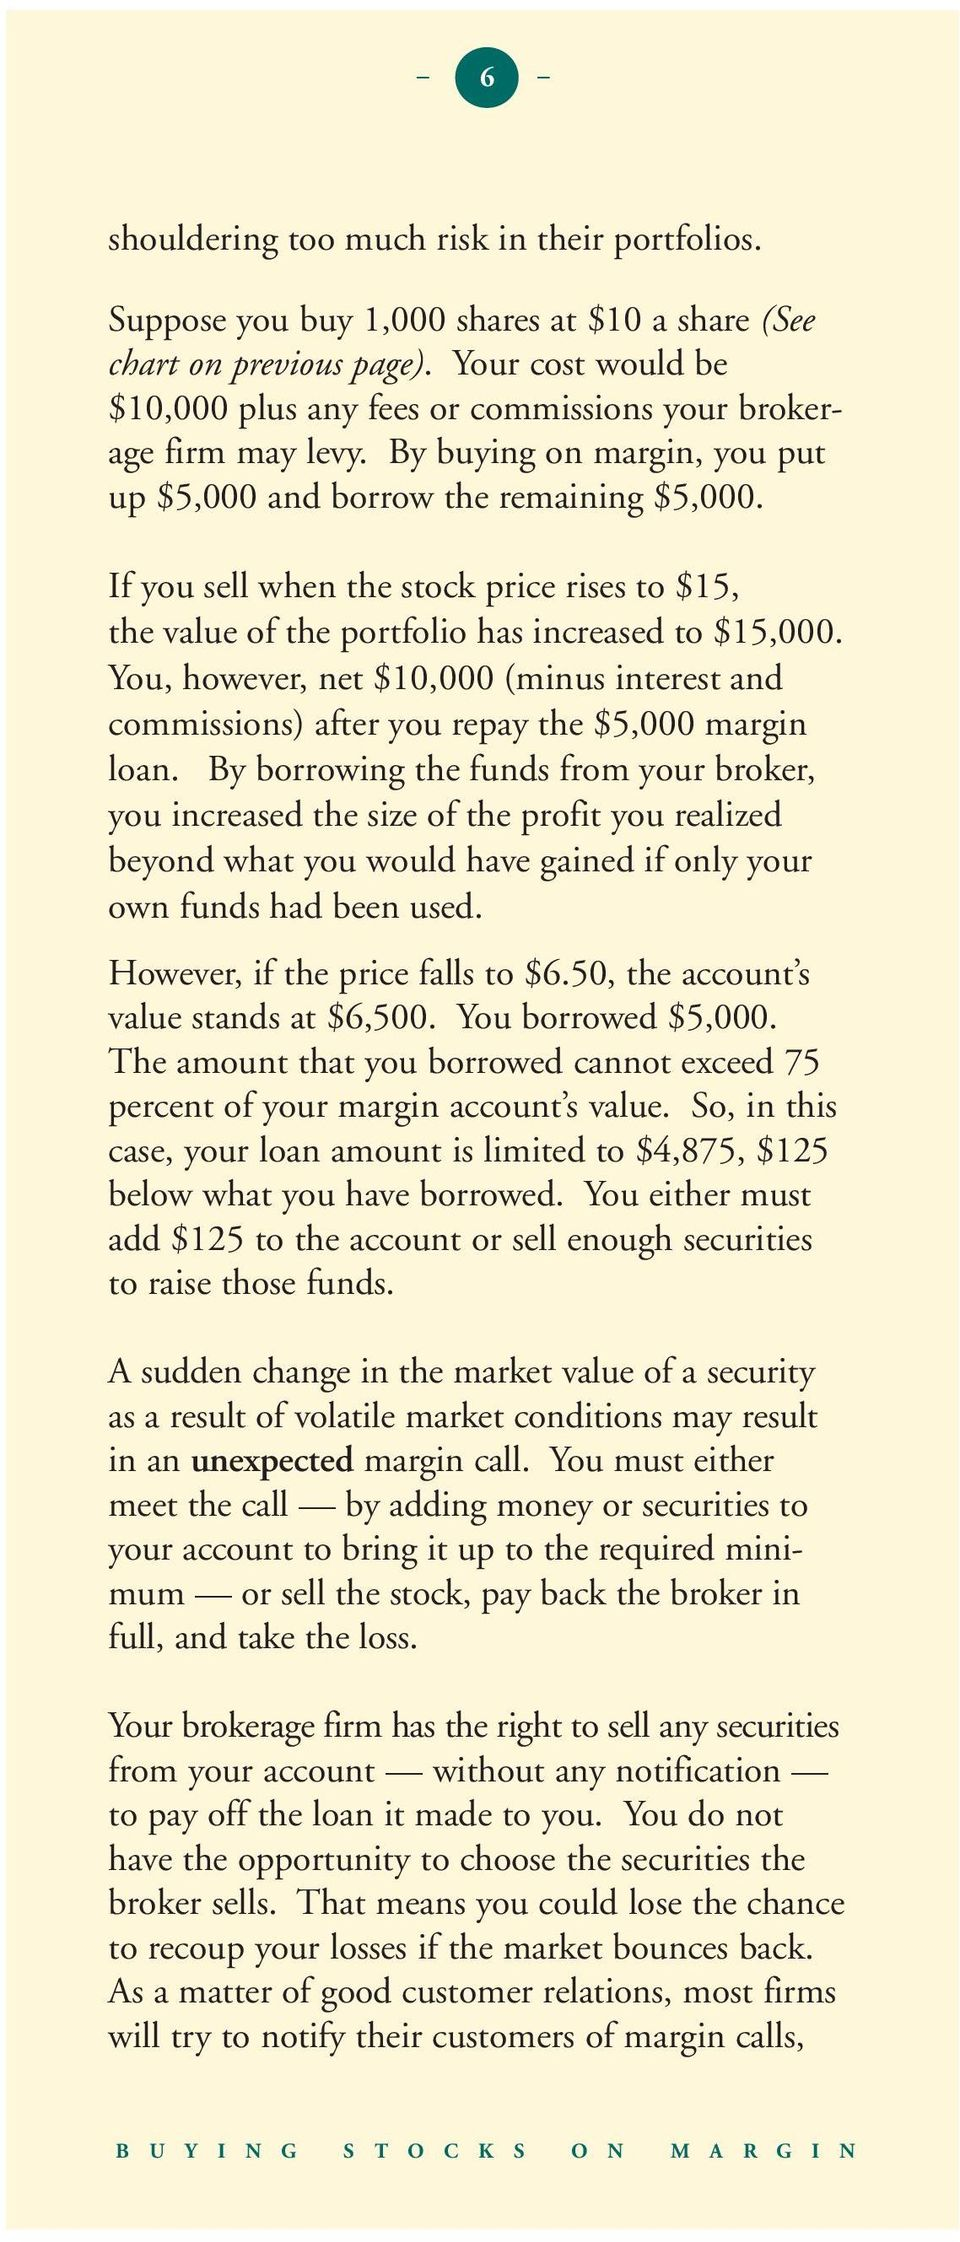 If you sell when the stock price rises to 15, the value of the portfolio has increased to 15,000. You, however, net 10,000 (minus interest and commissions) after you repay the 5,000 margin loan.